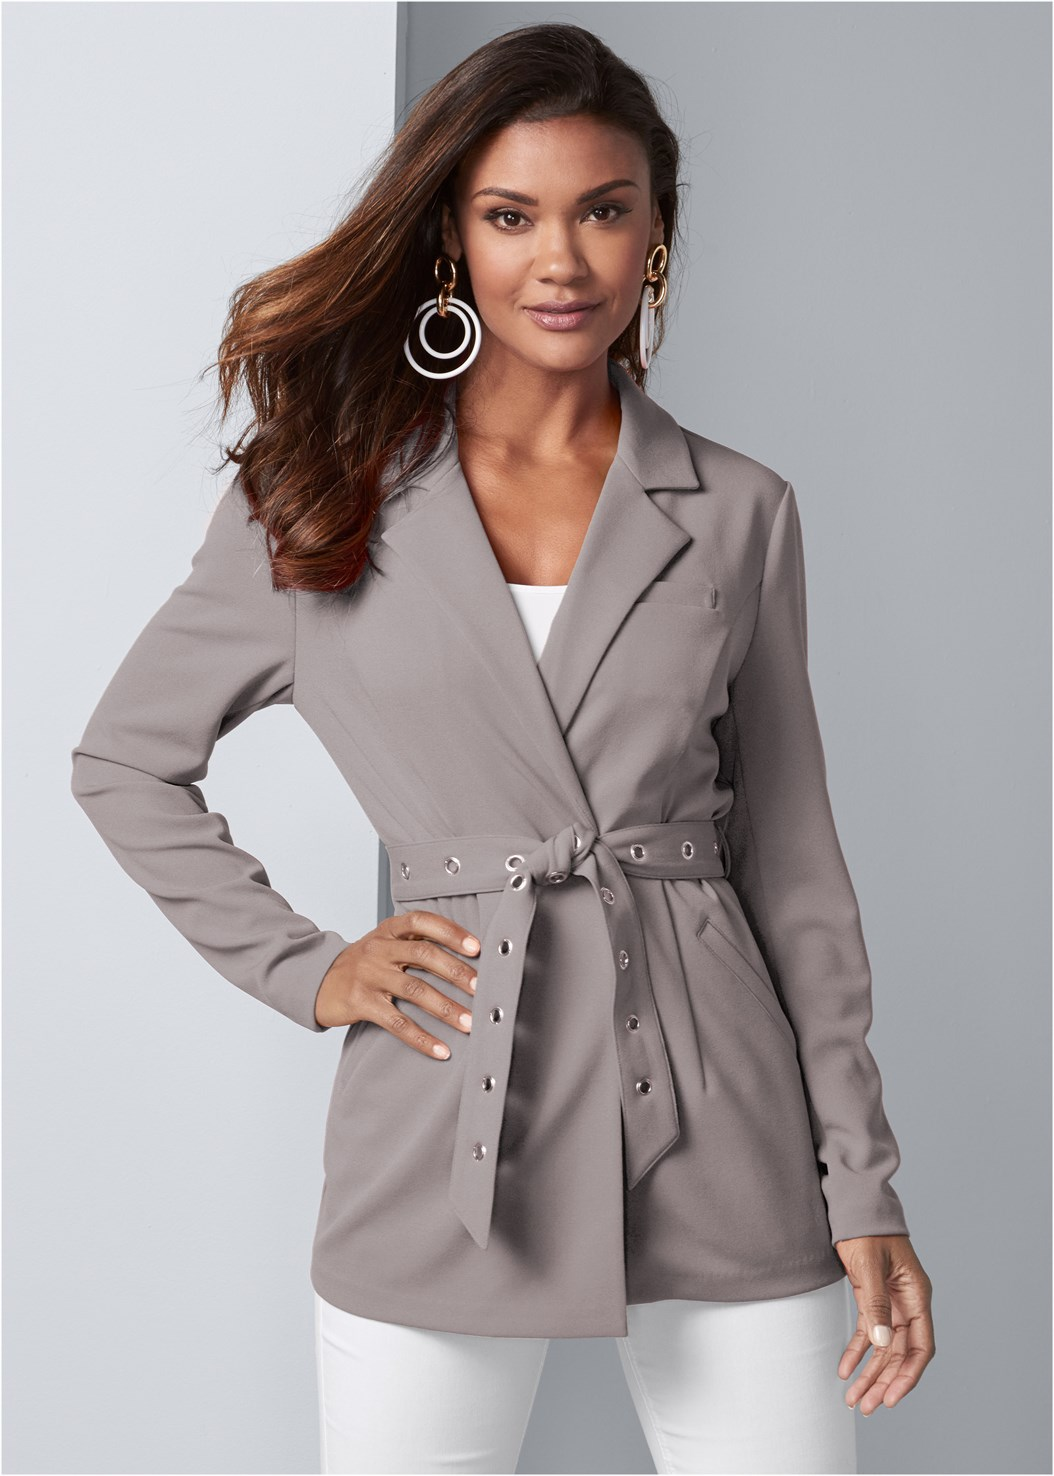 Belted Longline Blazer,Basic Cami Two Pack,Mid Rise Slimming Stretch Jeggings,Color Block Hoop Earrings